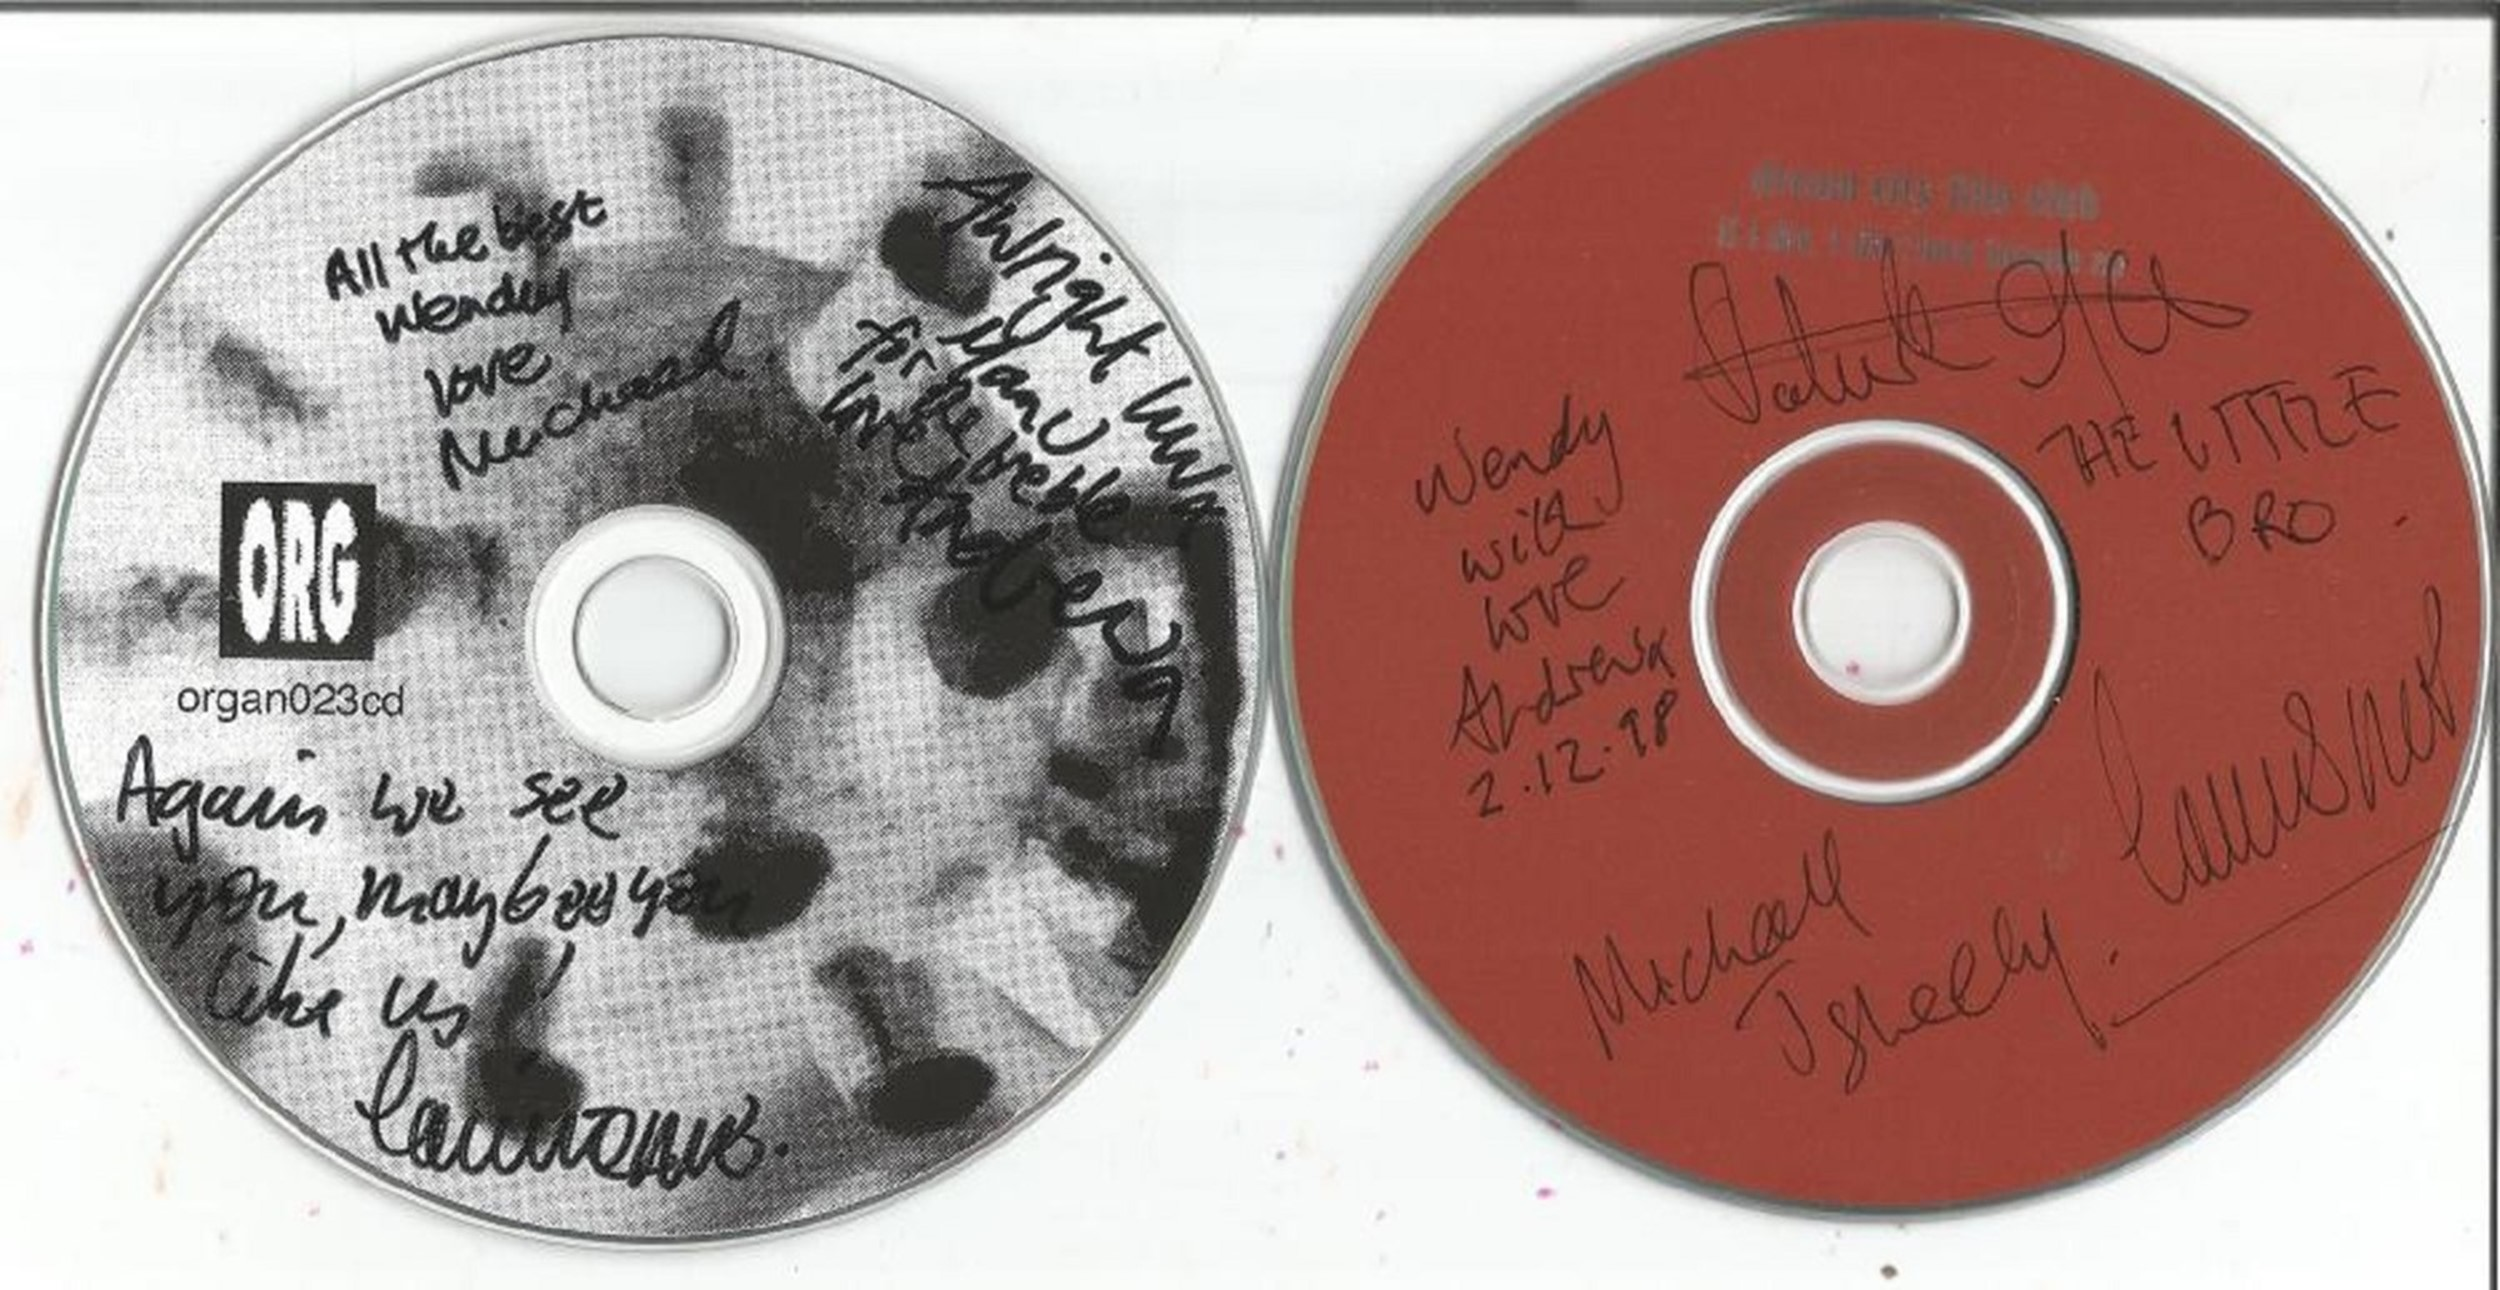 6 Signed CDs Including Ruarri Joseph Both Sides of the Coin Disc Included, Belvedere Faded - Image 2 of 3